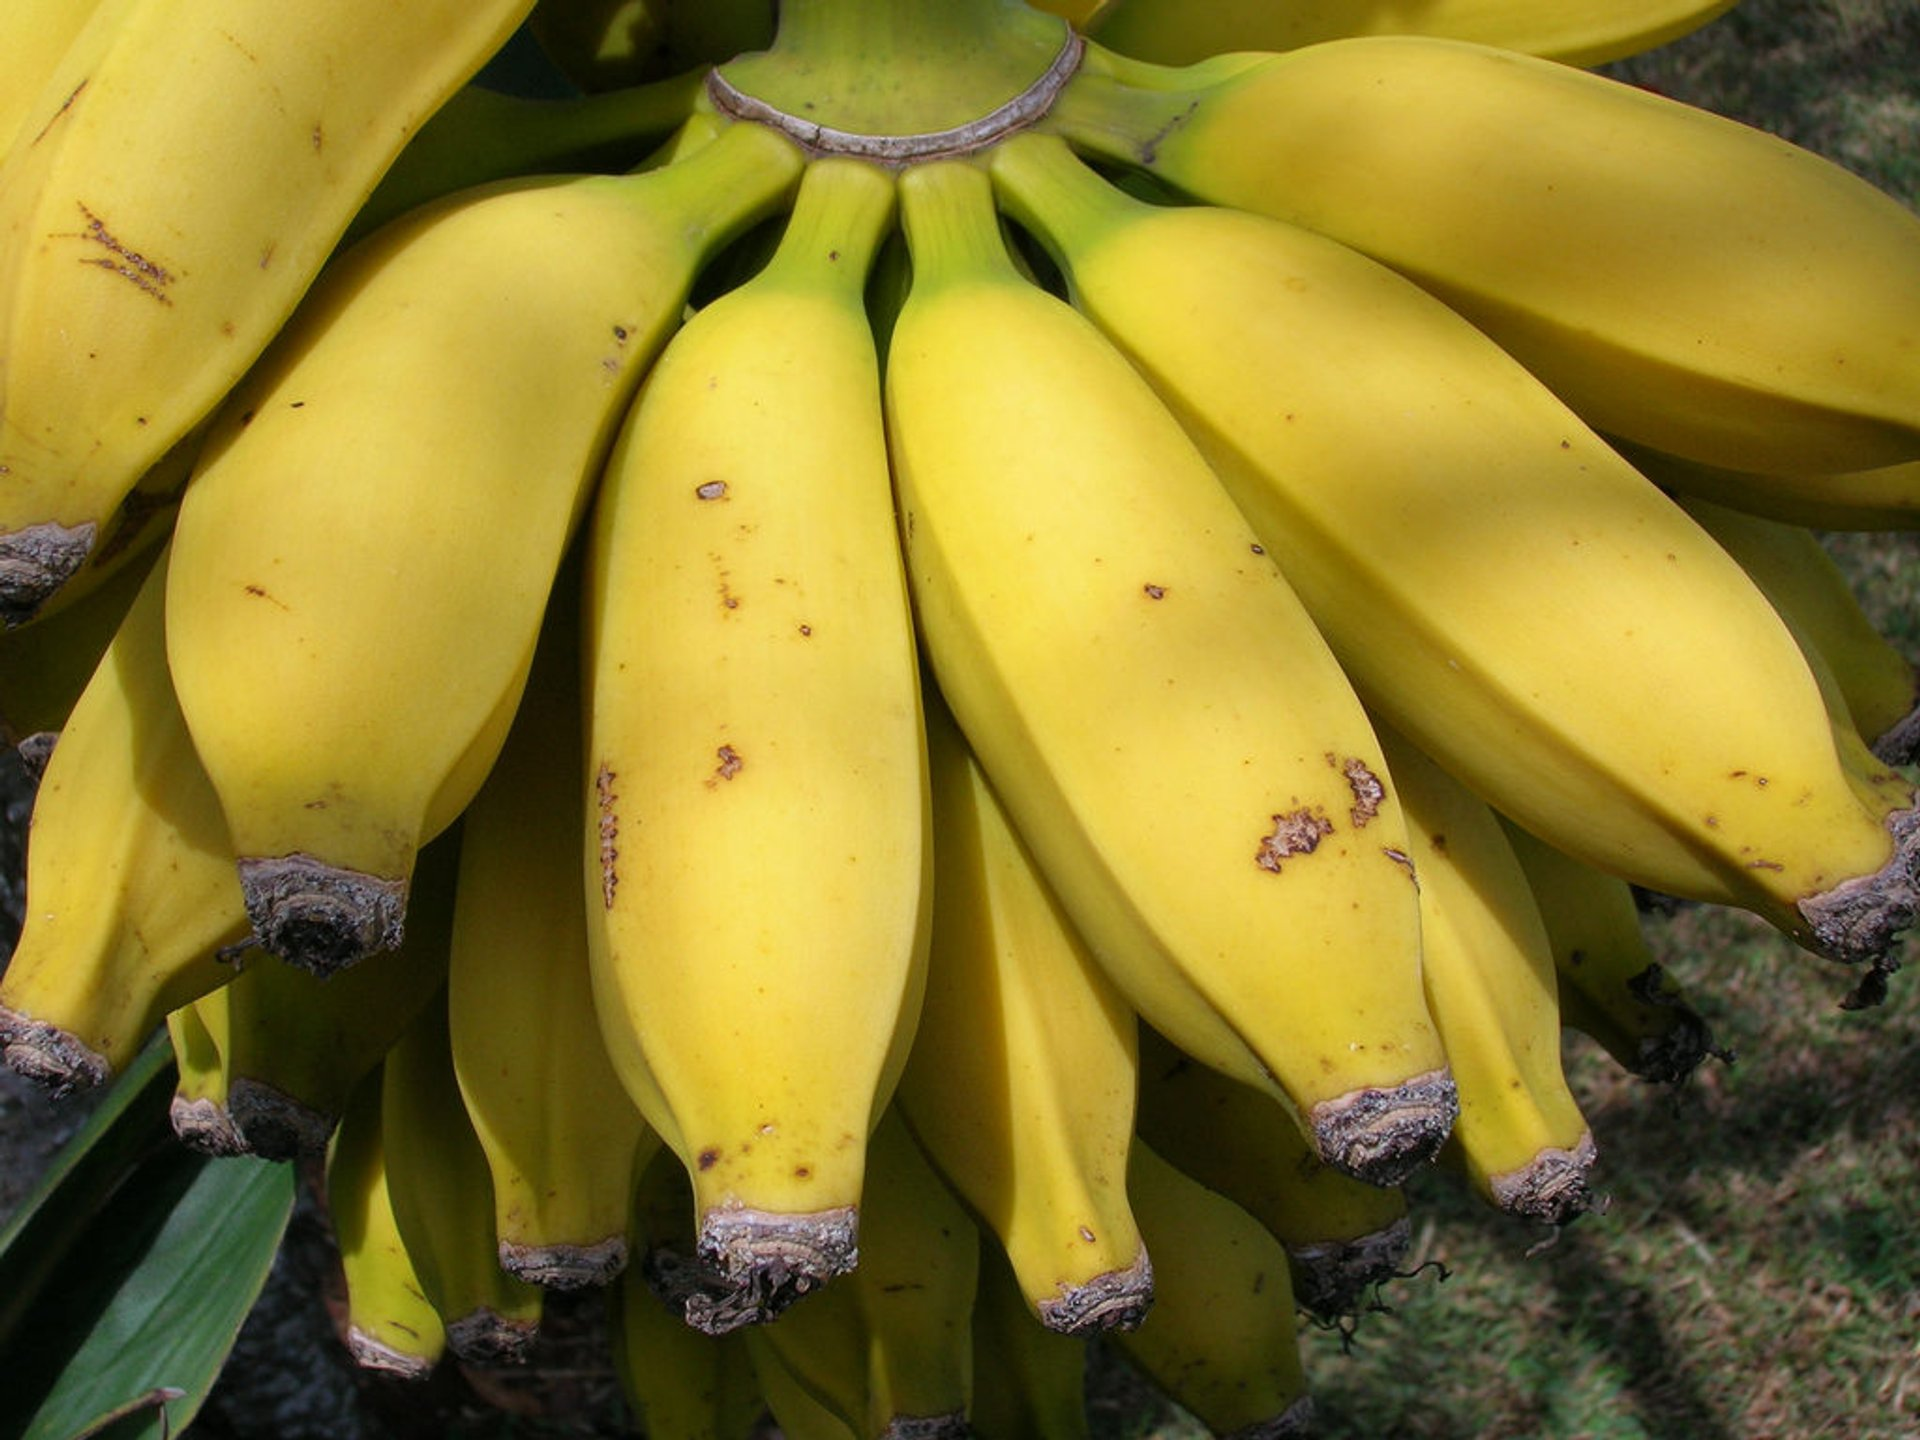 Apple Bananas in Hawaii - Best Season 2019